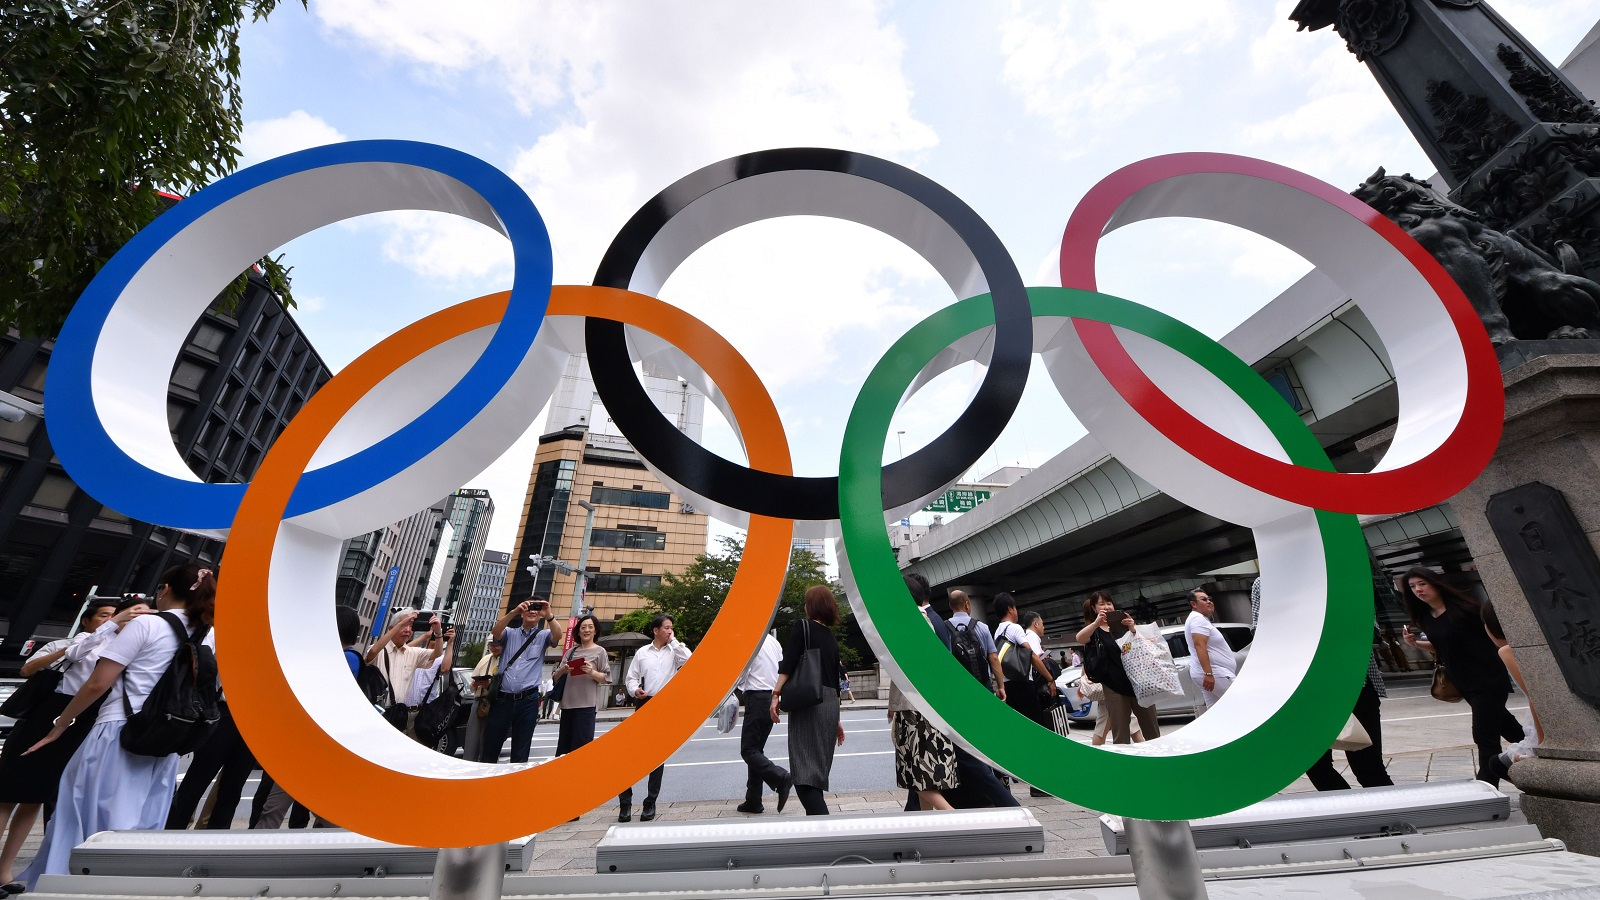 As Tokyo Olympics 2020 is almost here, the participation of the Indian Teams and sportspersons is being reviewed round the clock.